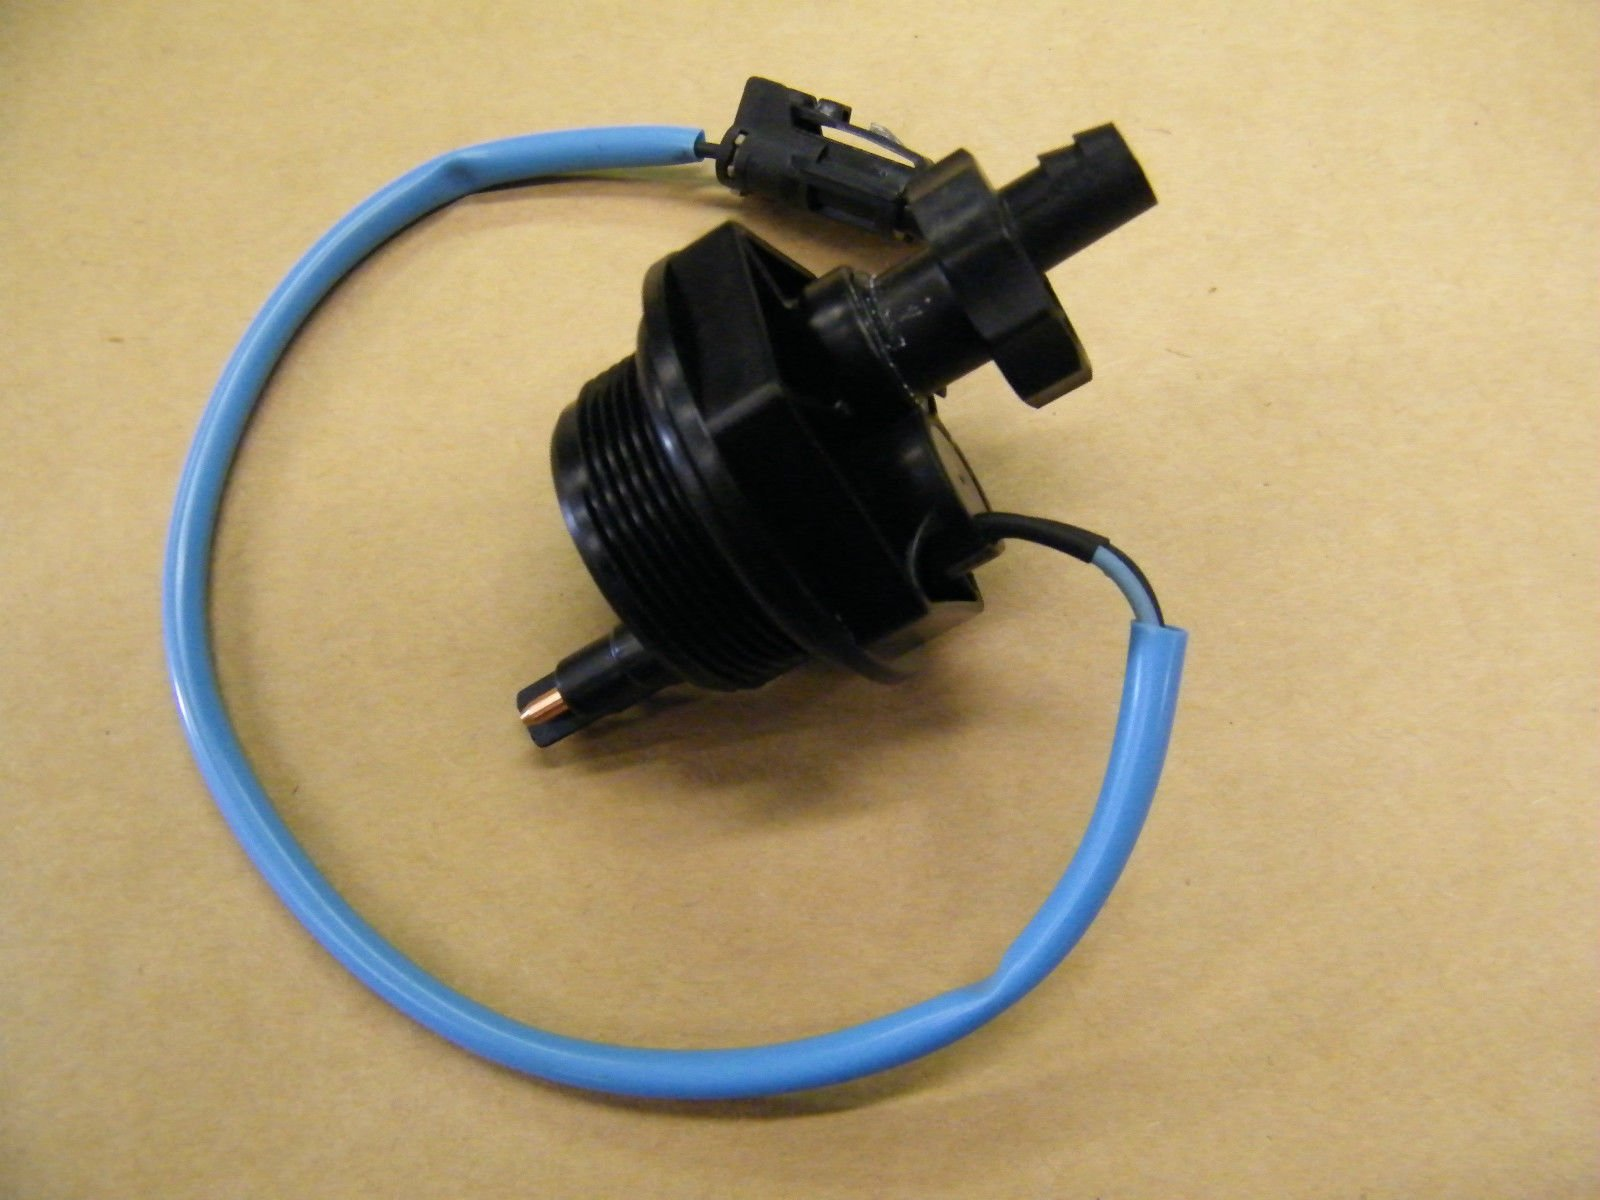 2007 Ram 2500 Fuel Filter Cheap Cummins Find Deals On Line At Water In Float Sensor 2 Pin Fits 2013 Up Dodge 67